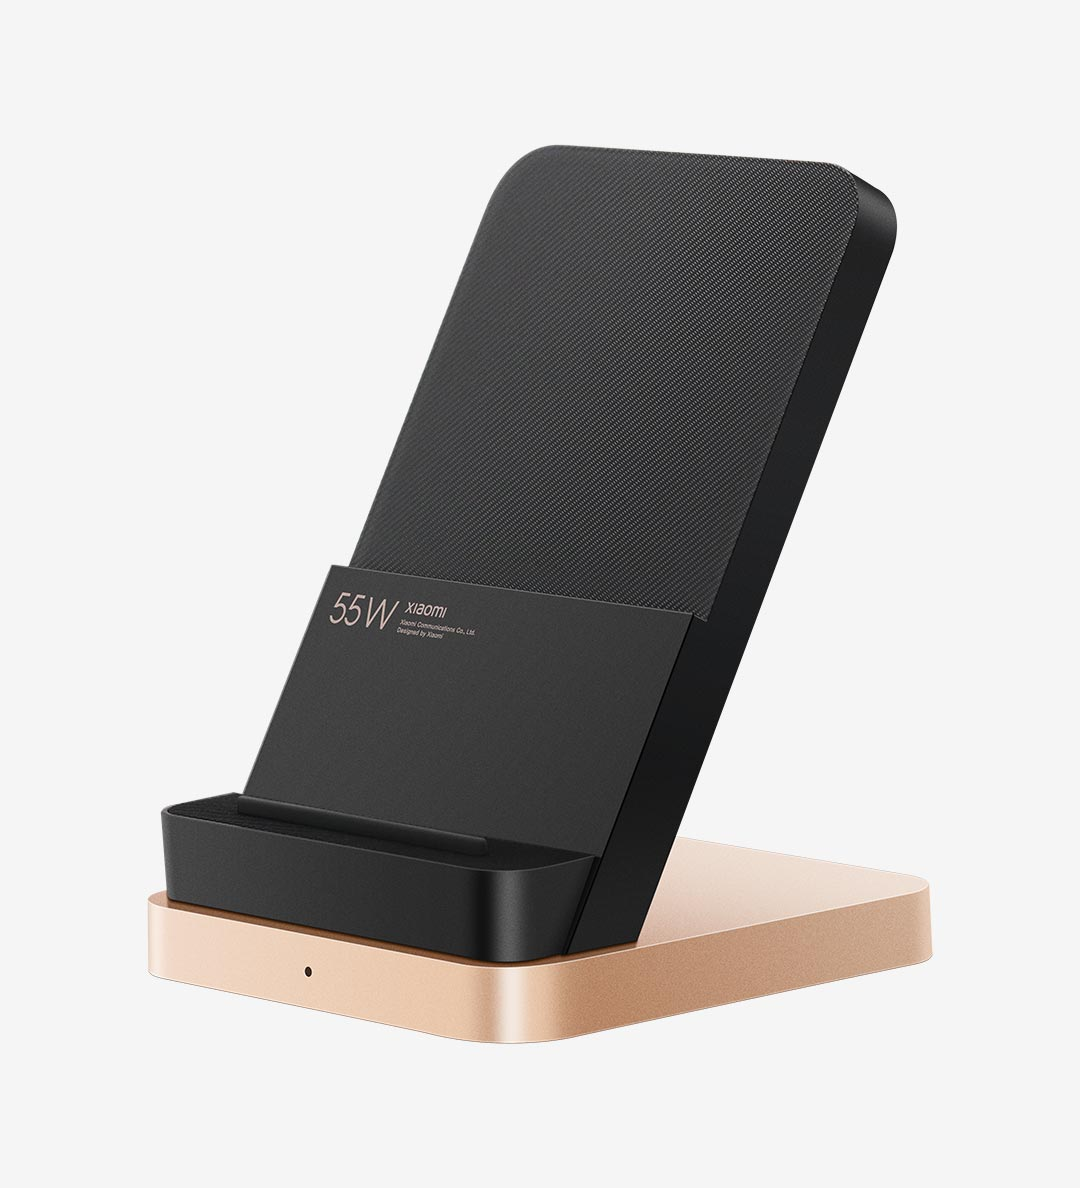 sac-khong-day-xiaomi-wireless-charge-55w